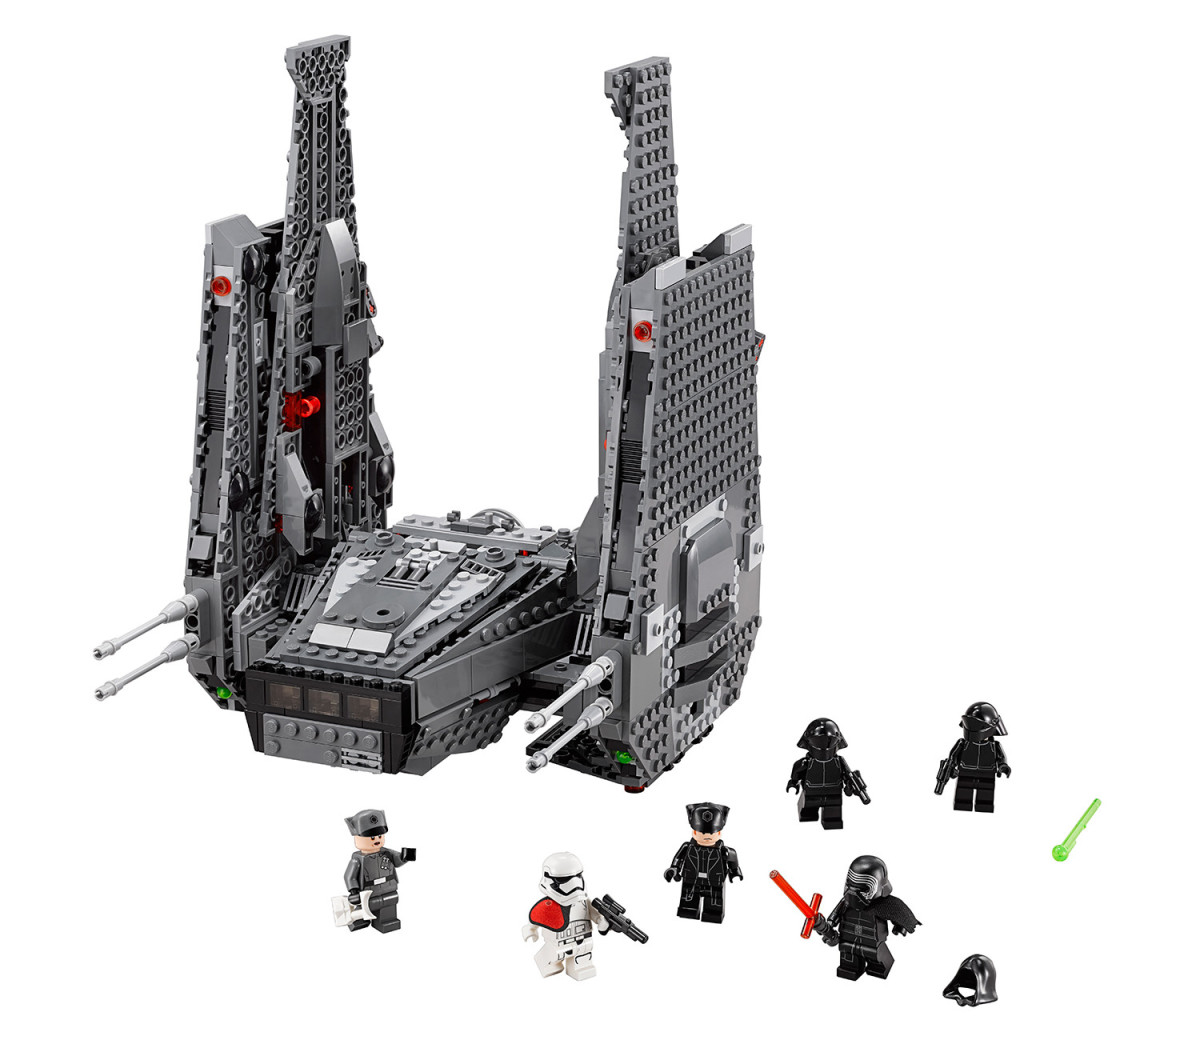 lego-unveils-star-wars-the-force-awakens-sets-05